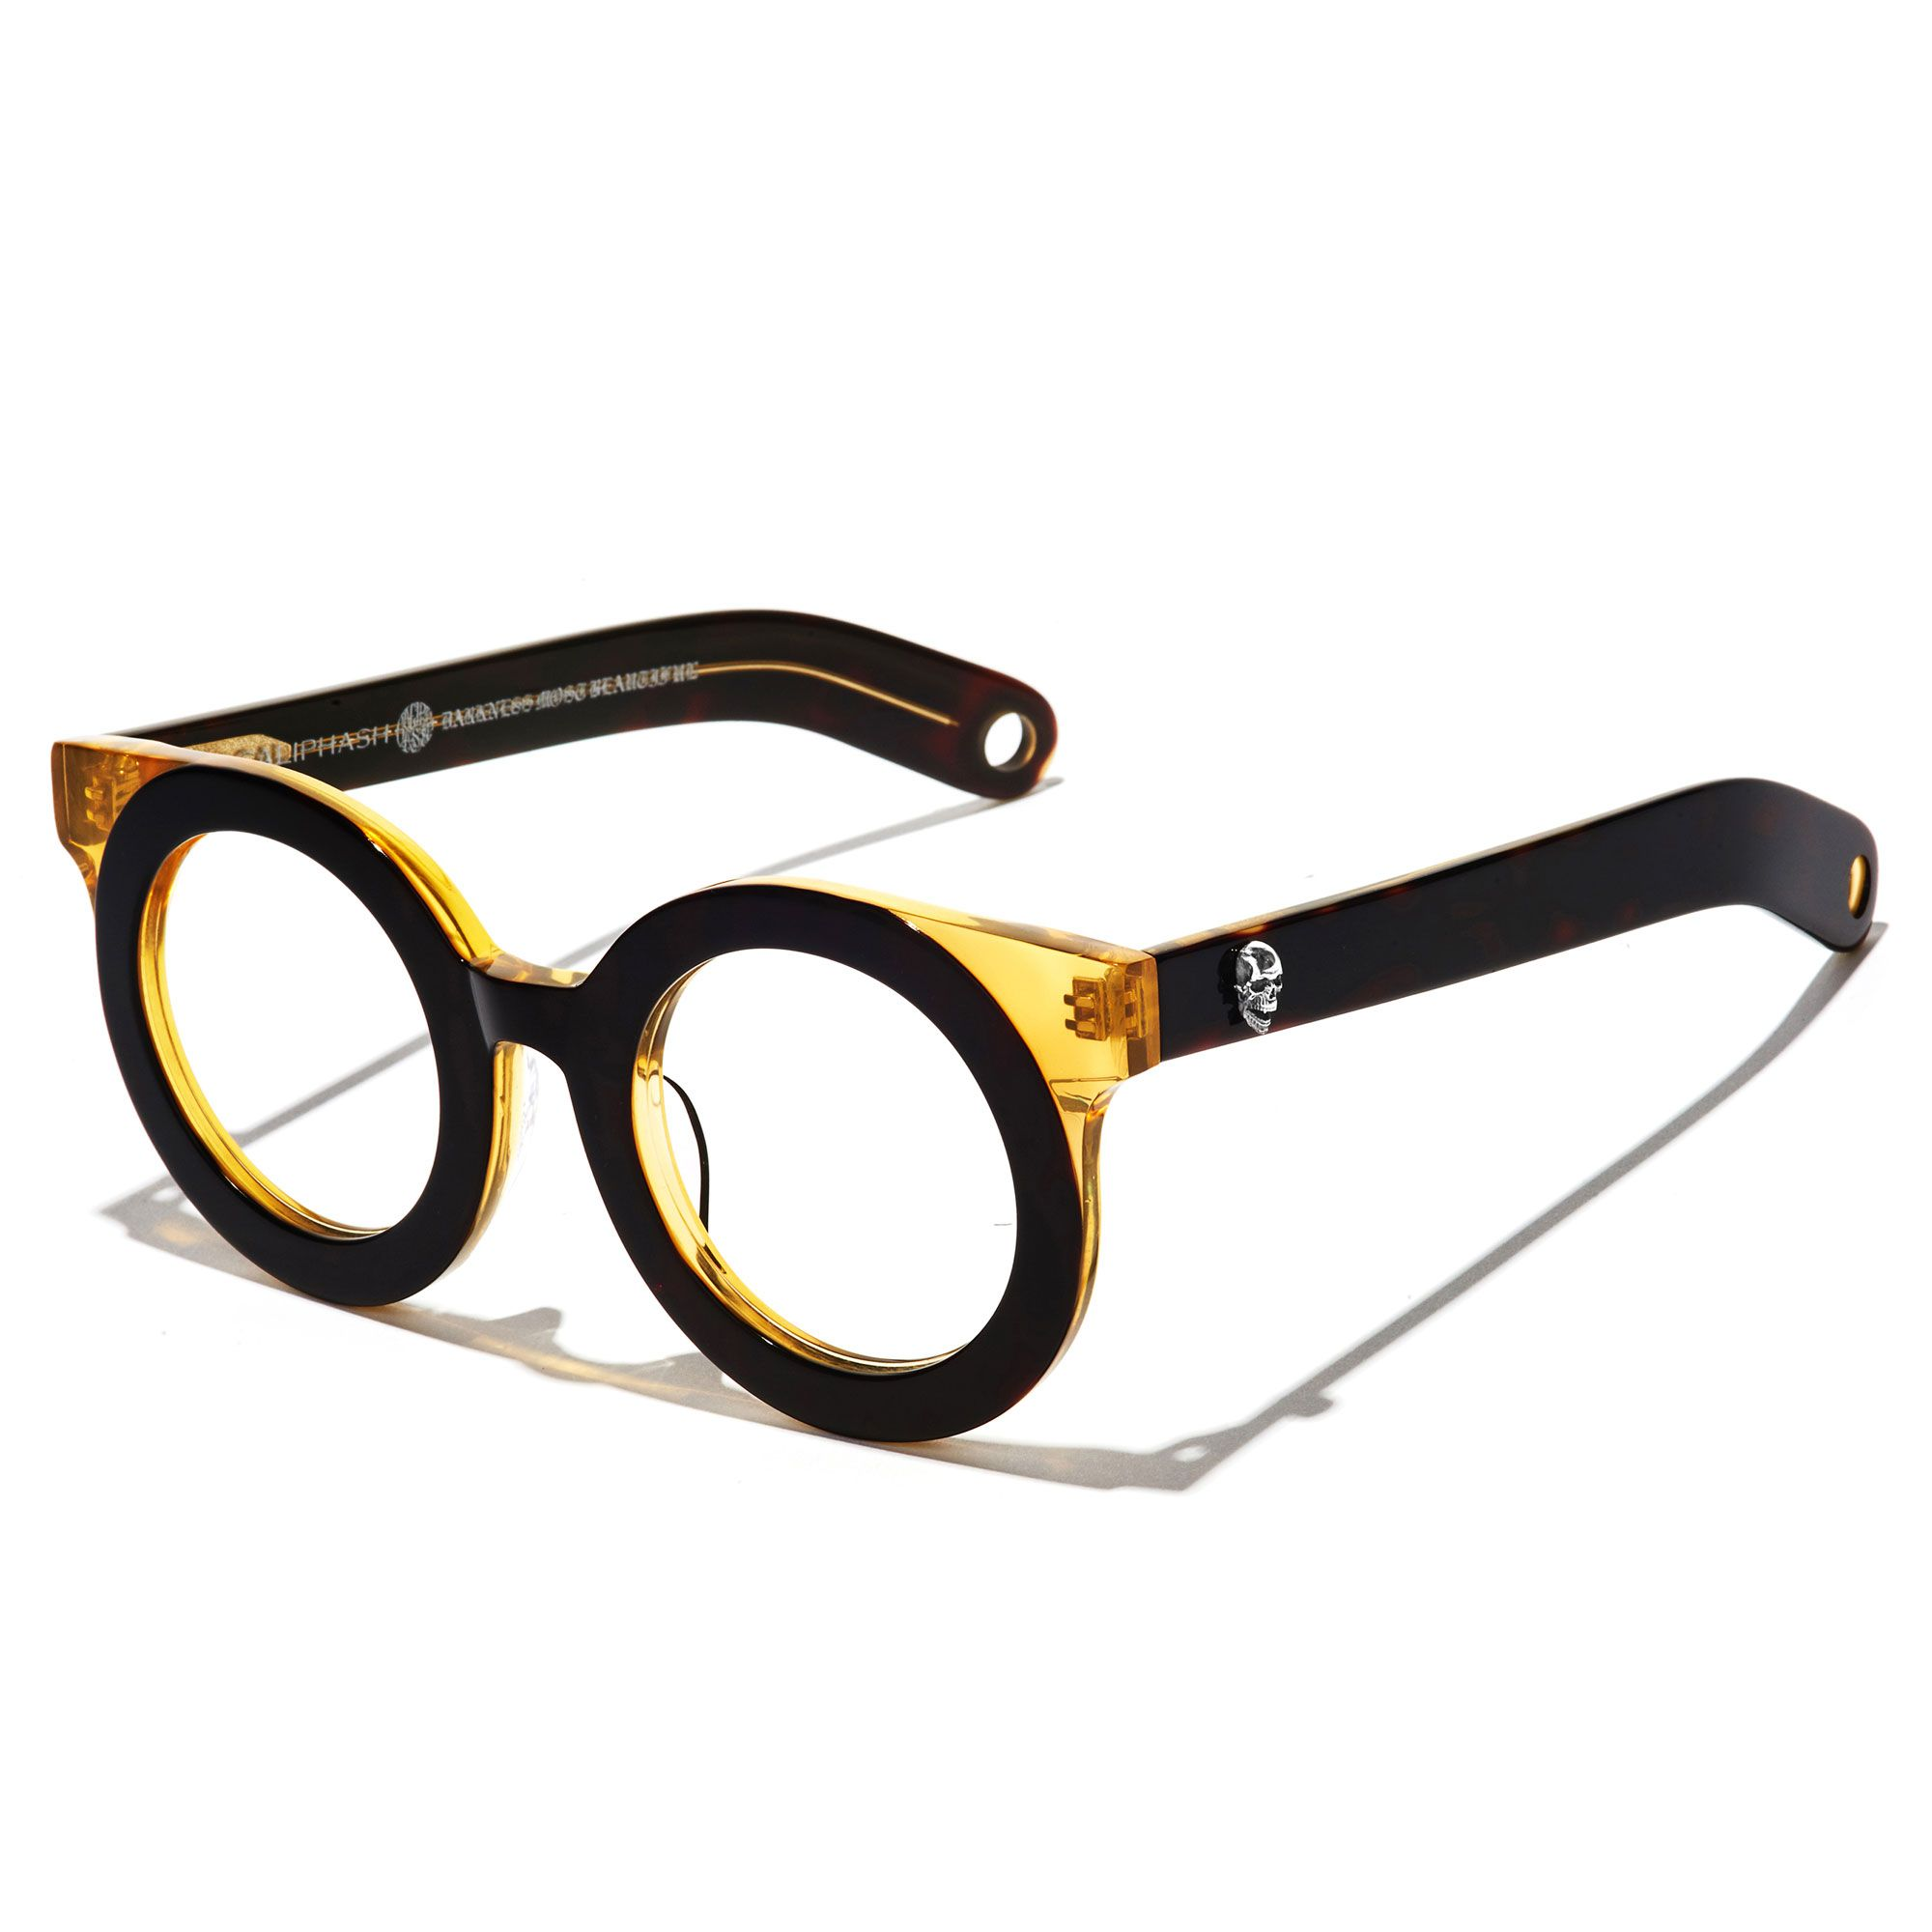 71f98ee0ae8 OVER 03 GLASSES FROM CALIPHASH Glasses Trends